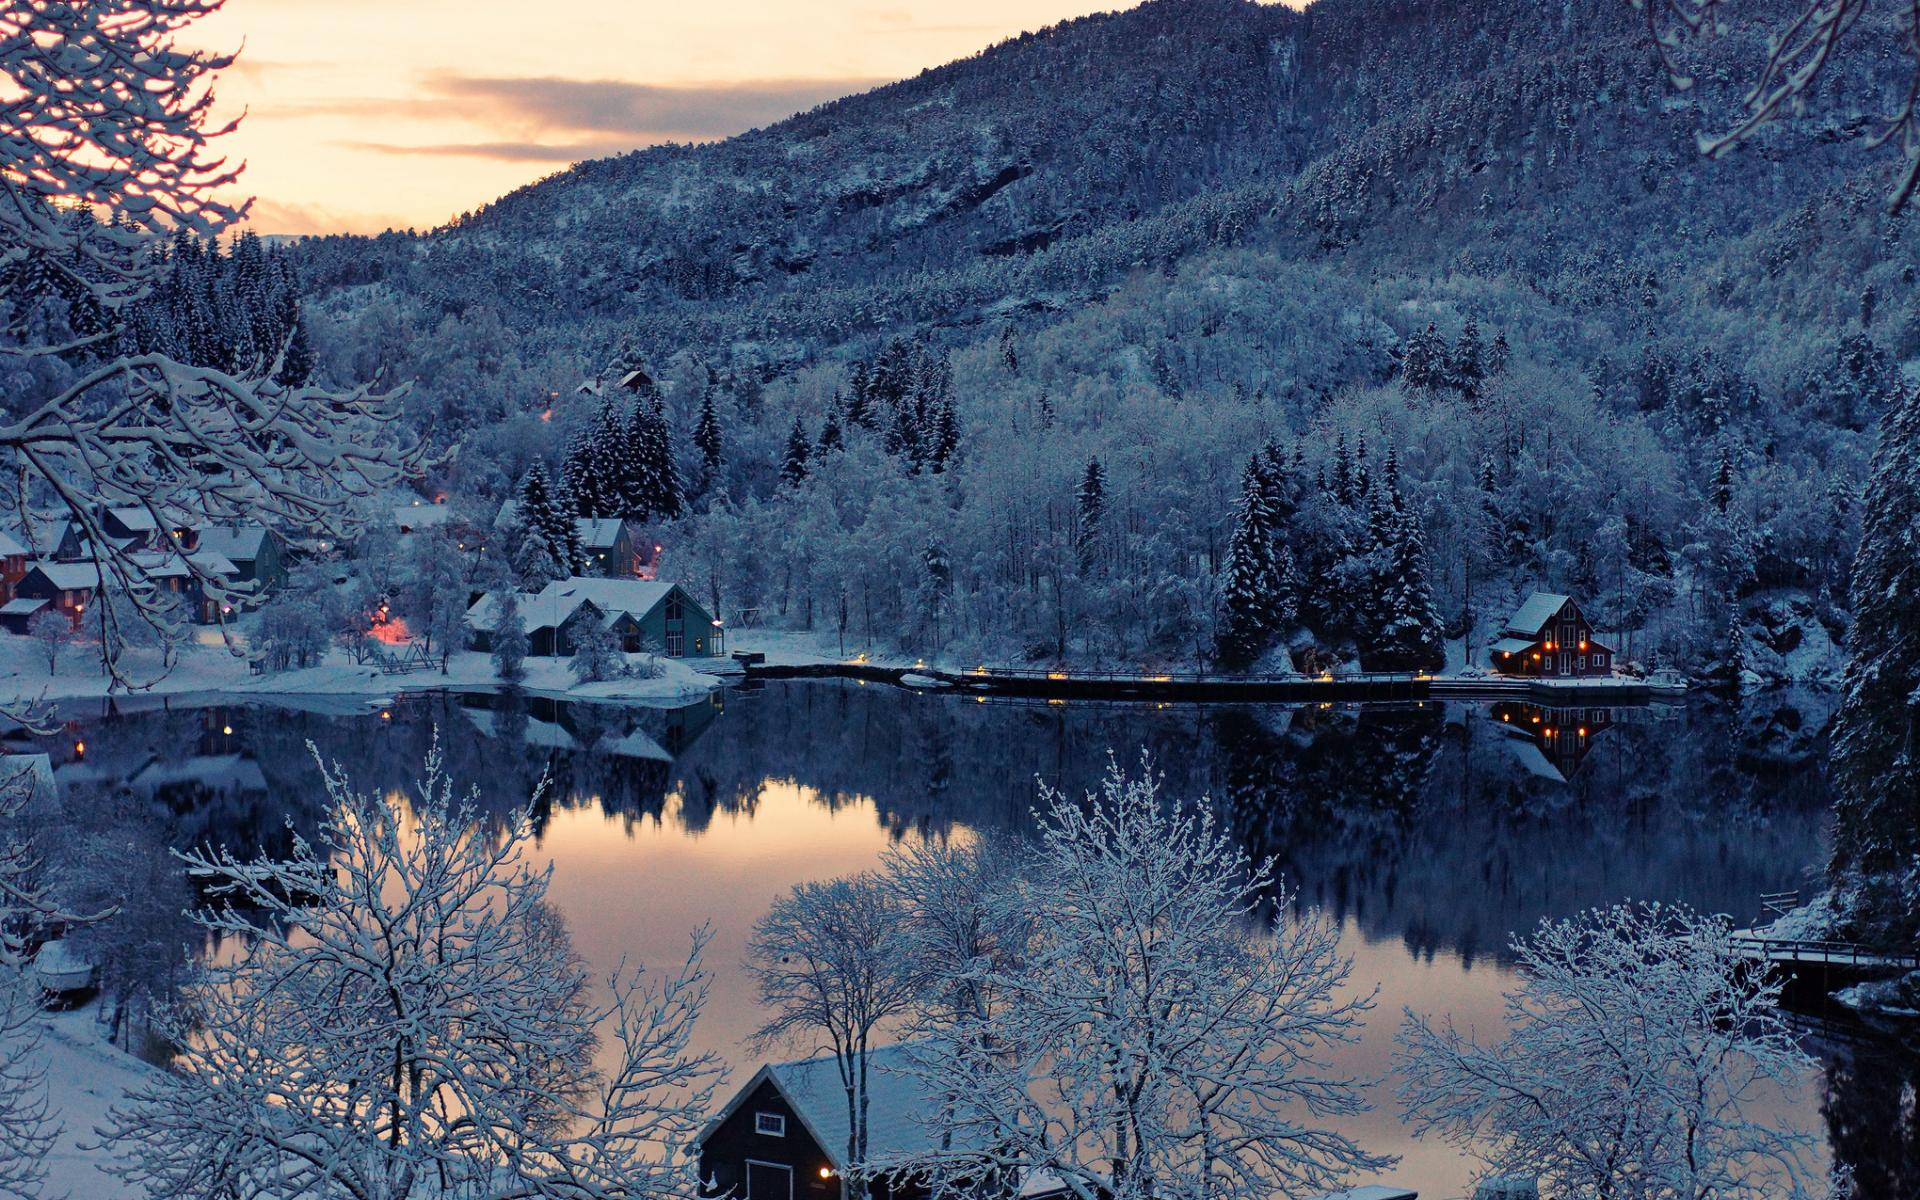 Norway_nature_landscapes_lakes_water_reflection_hills_mountains_trees_forest_sunset_sunrise_scenic_winter_snow_seasons_architecture_buildings_houses_resort_lights_1920x1200.jpg